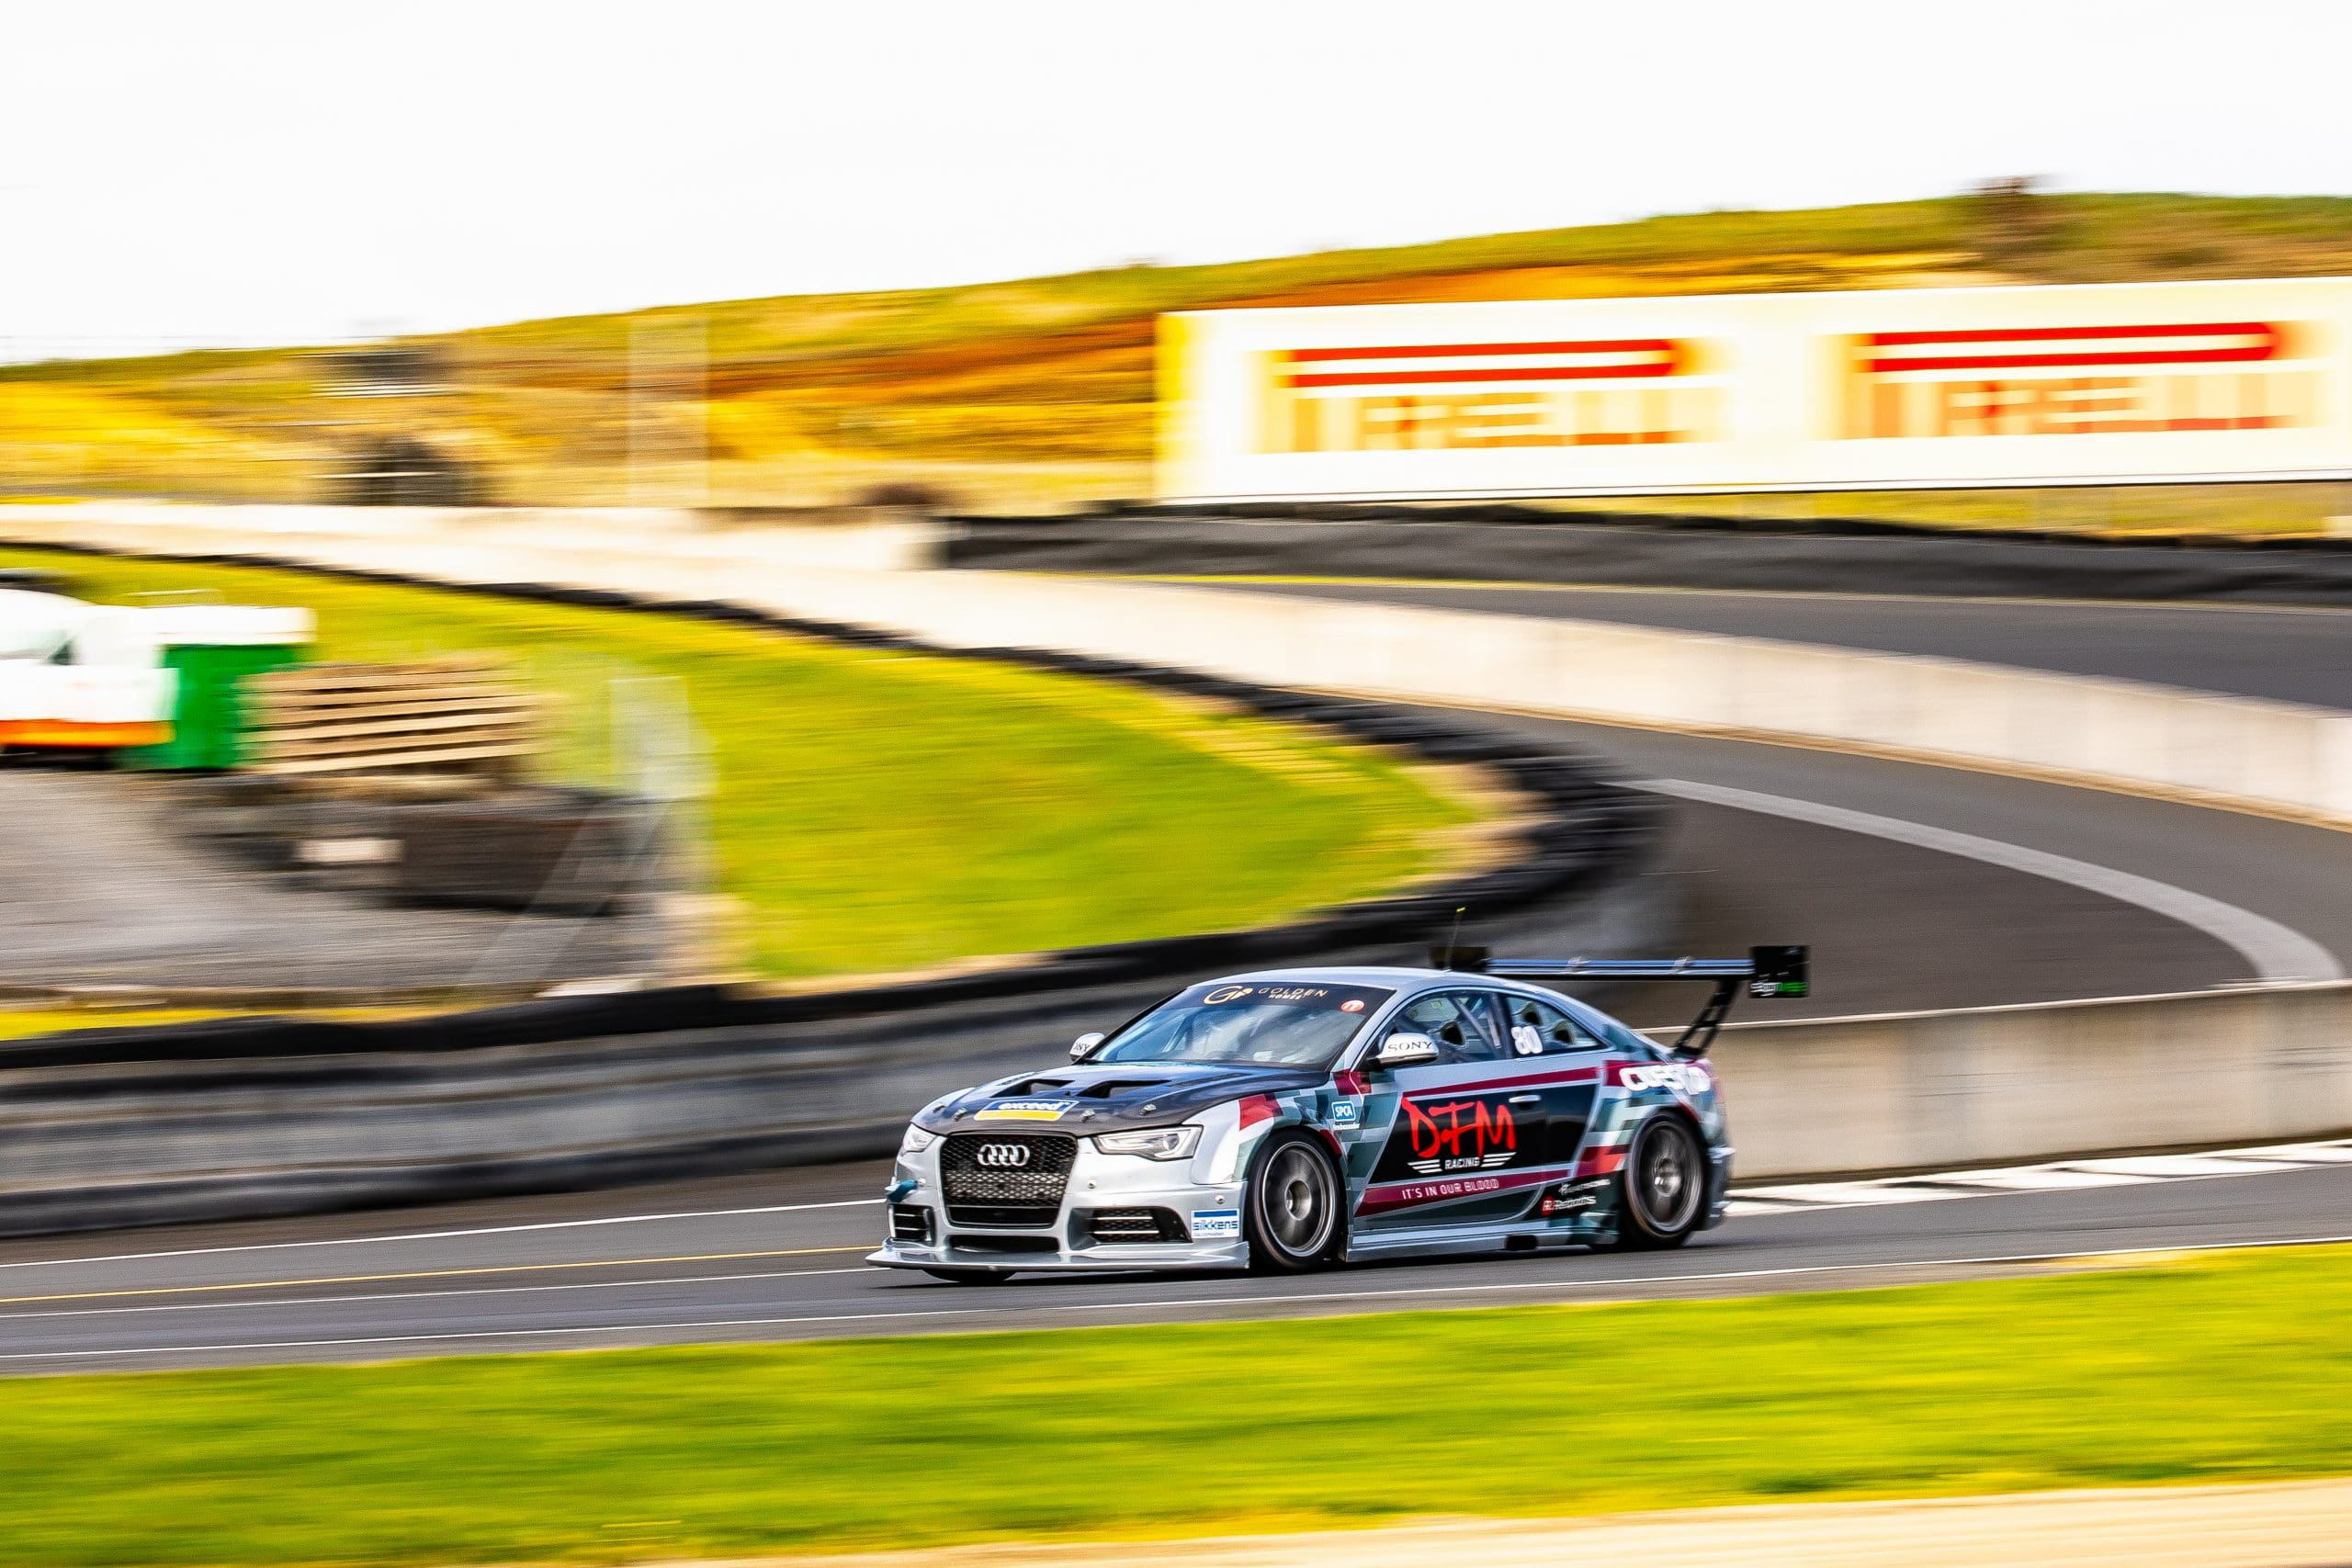 Jono Lester in the DFM Racing Audi